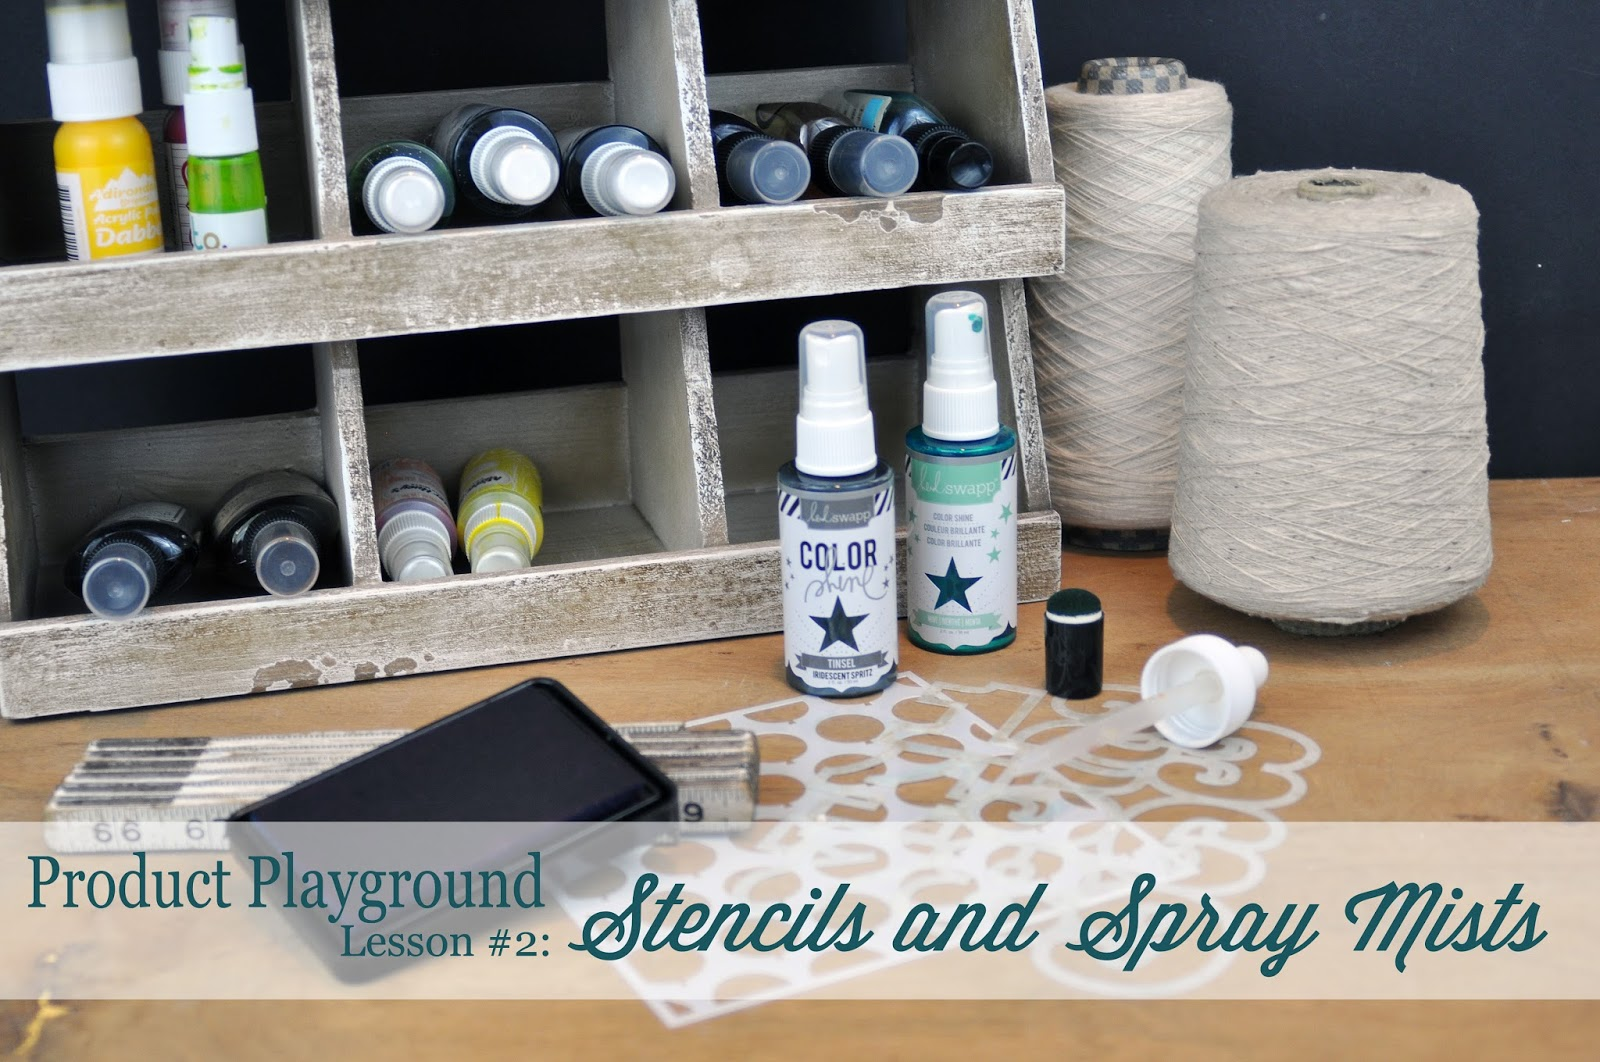 Stencils and Spray Mists Scrapbooking Process Video and Class through Big Picture Classes by Jen Gallacher http://www.bigpictureclasses.com/classes/product-playground-02